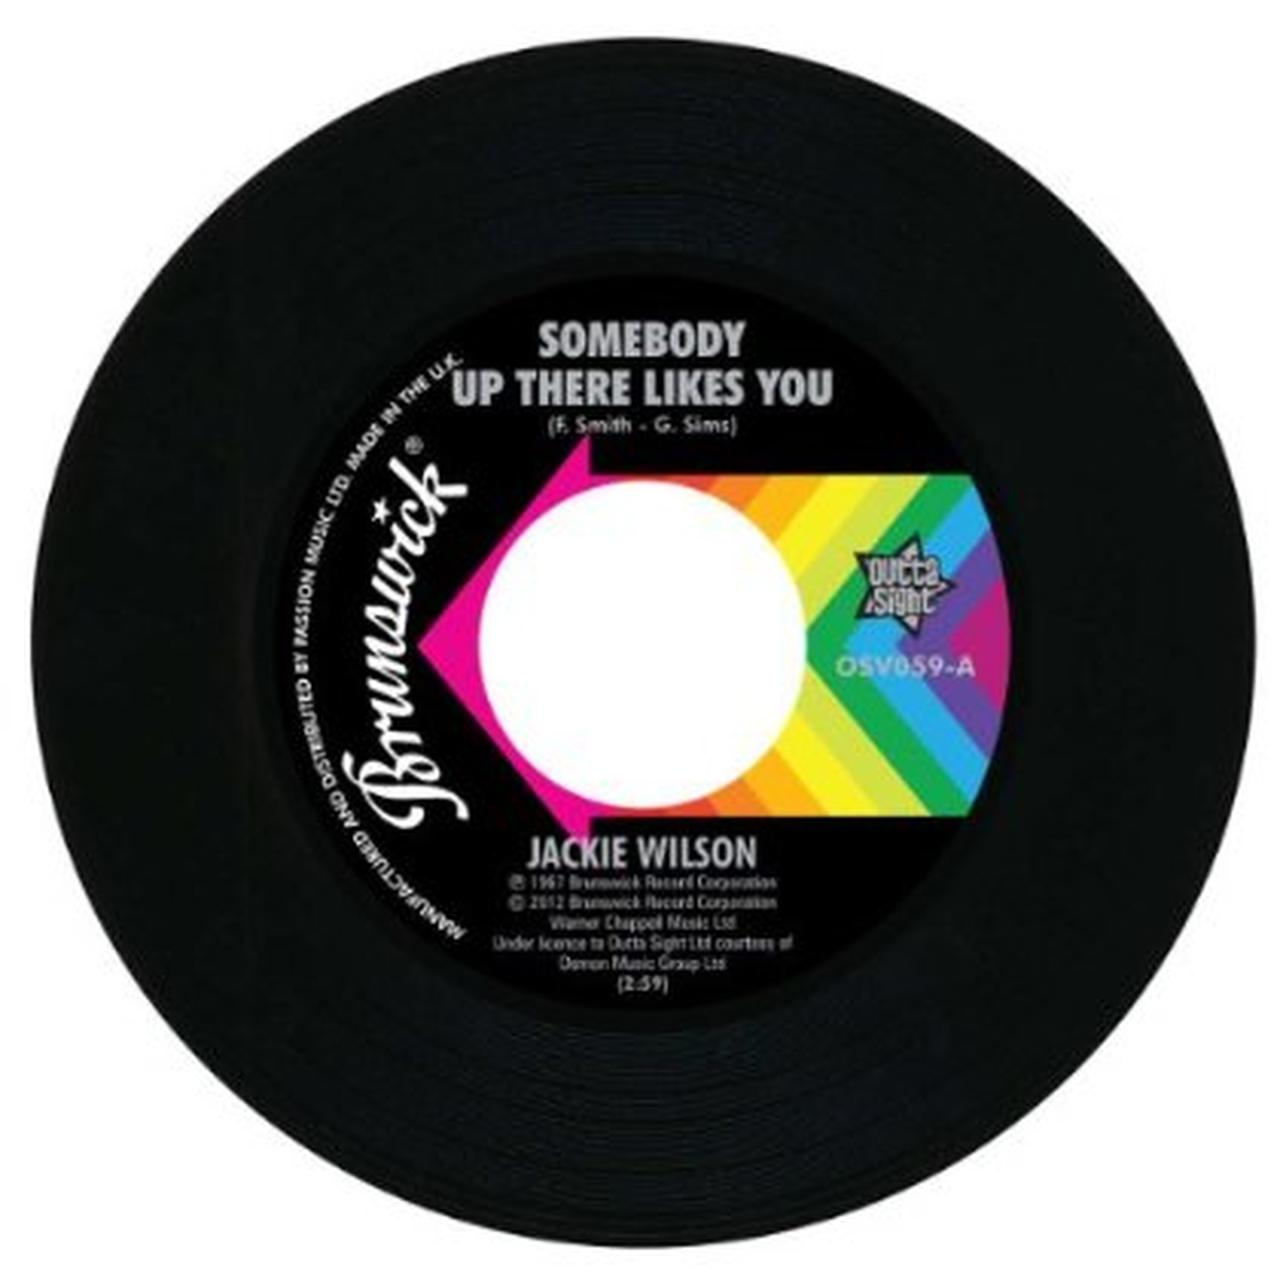 SOMEBODY UP THERE LIKES YOU A LOVELY WAY TO DIE Vinyl Record